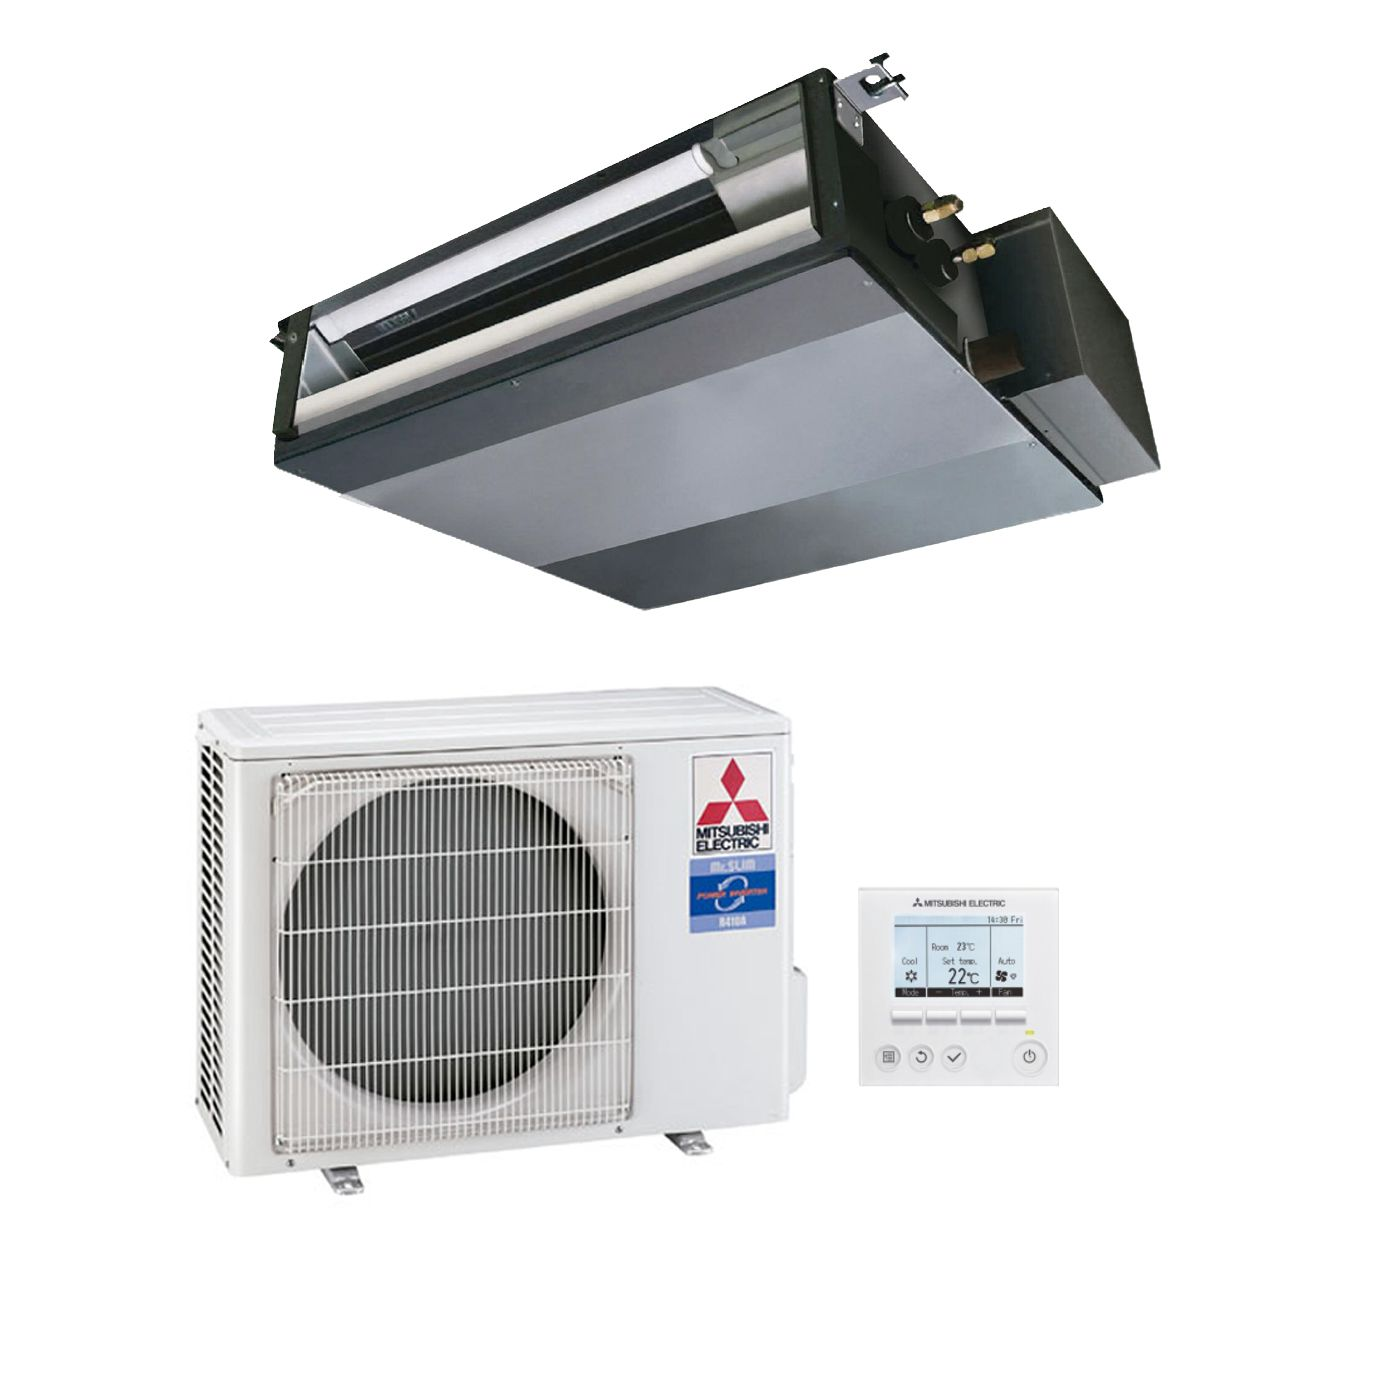 hight resolution of mitsubishi electric air conditioning sez ka50vaq concealed ducted heat pump inverter 5kw 17000btu a